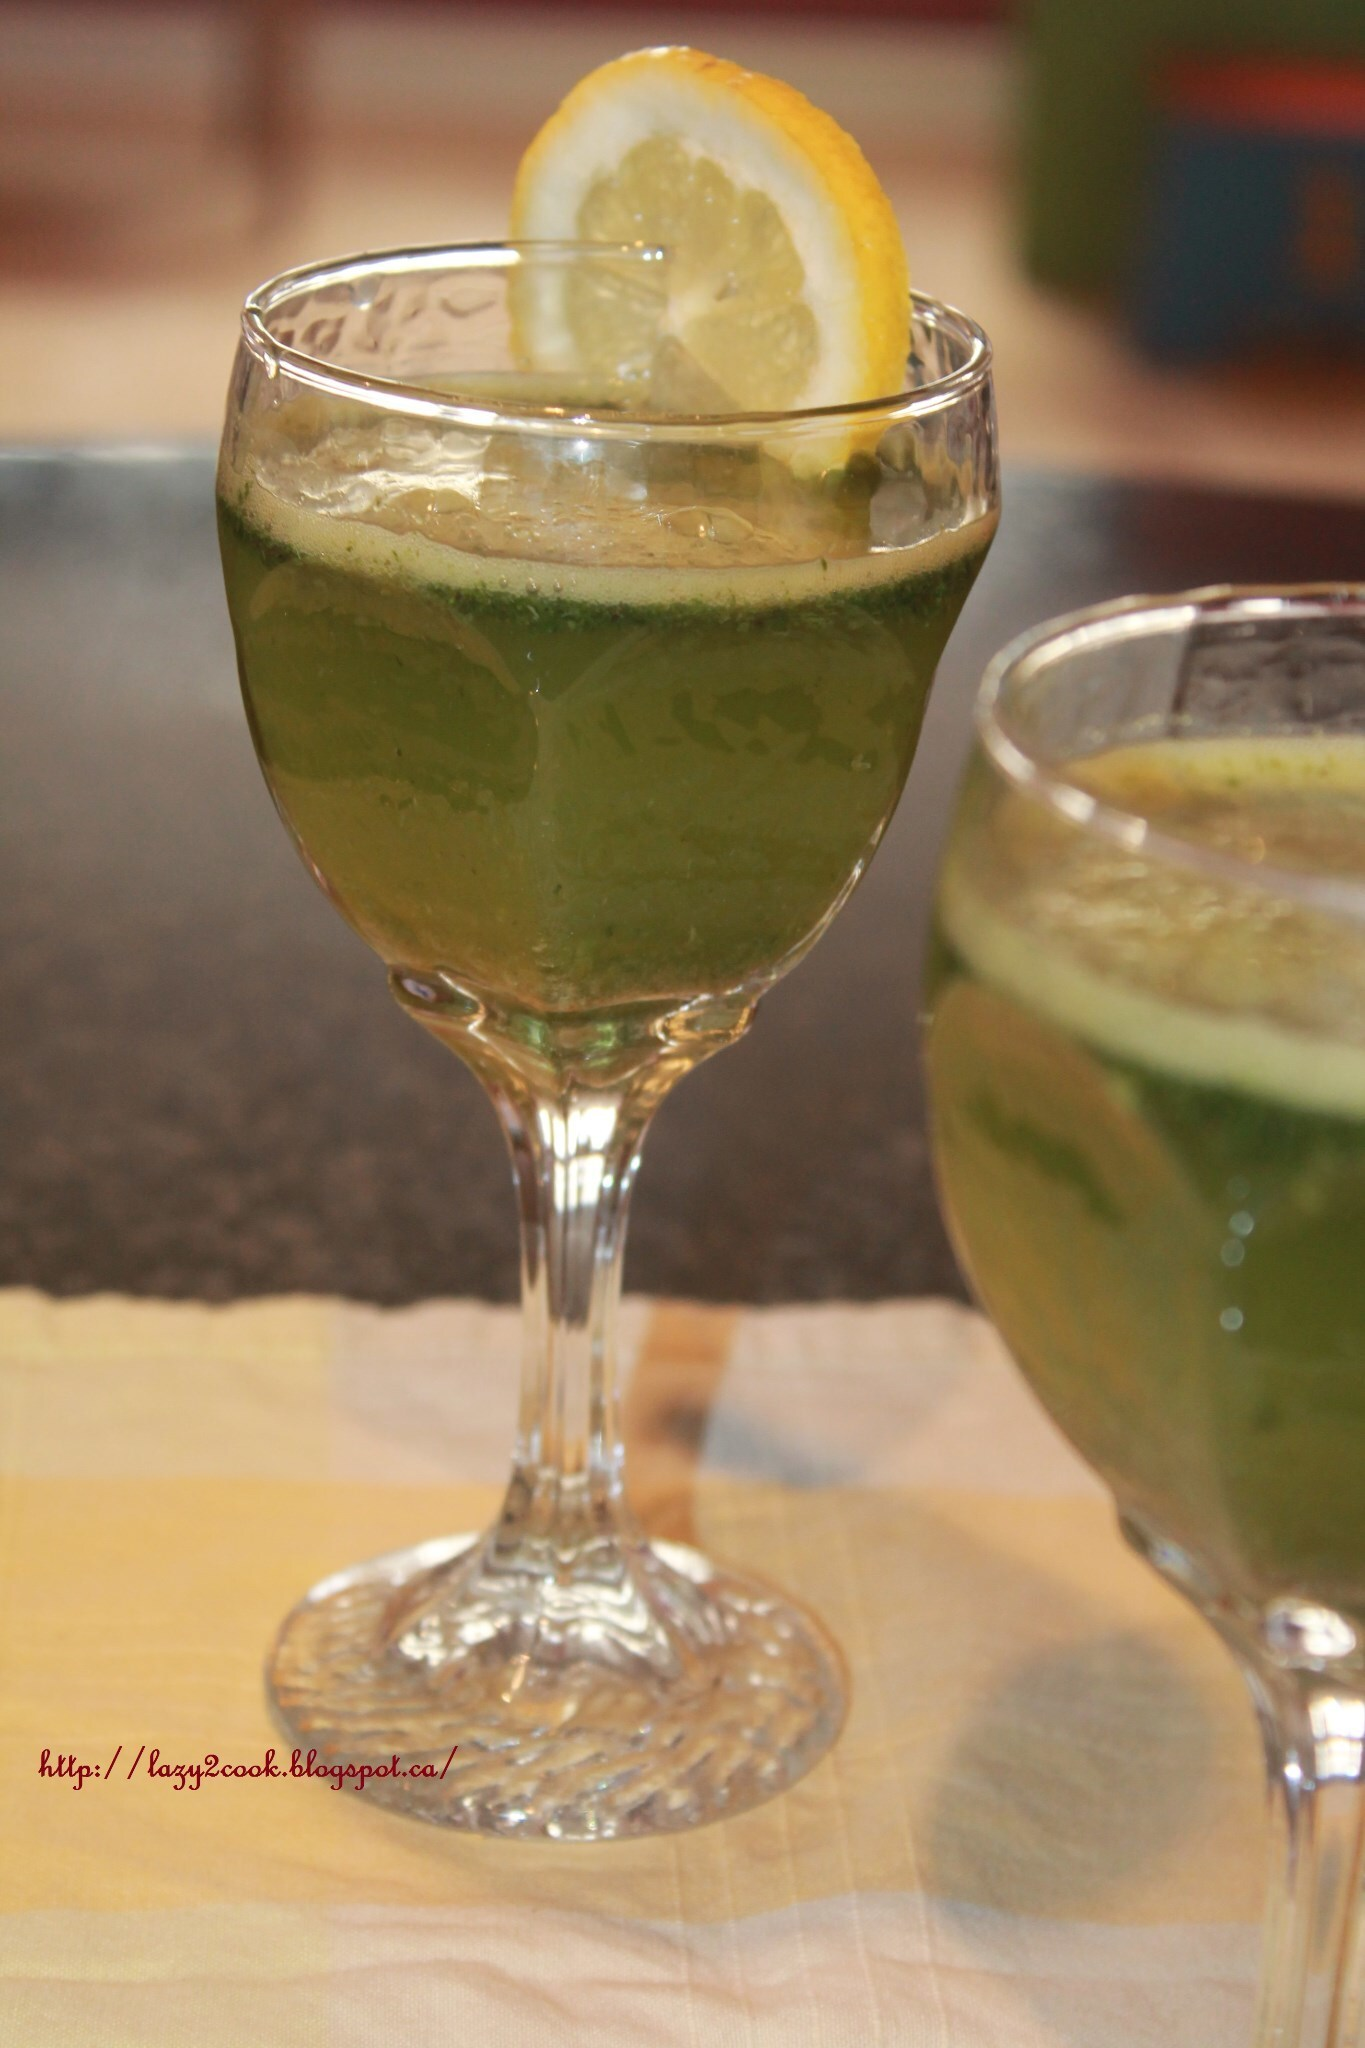 Mint and Lemon juice